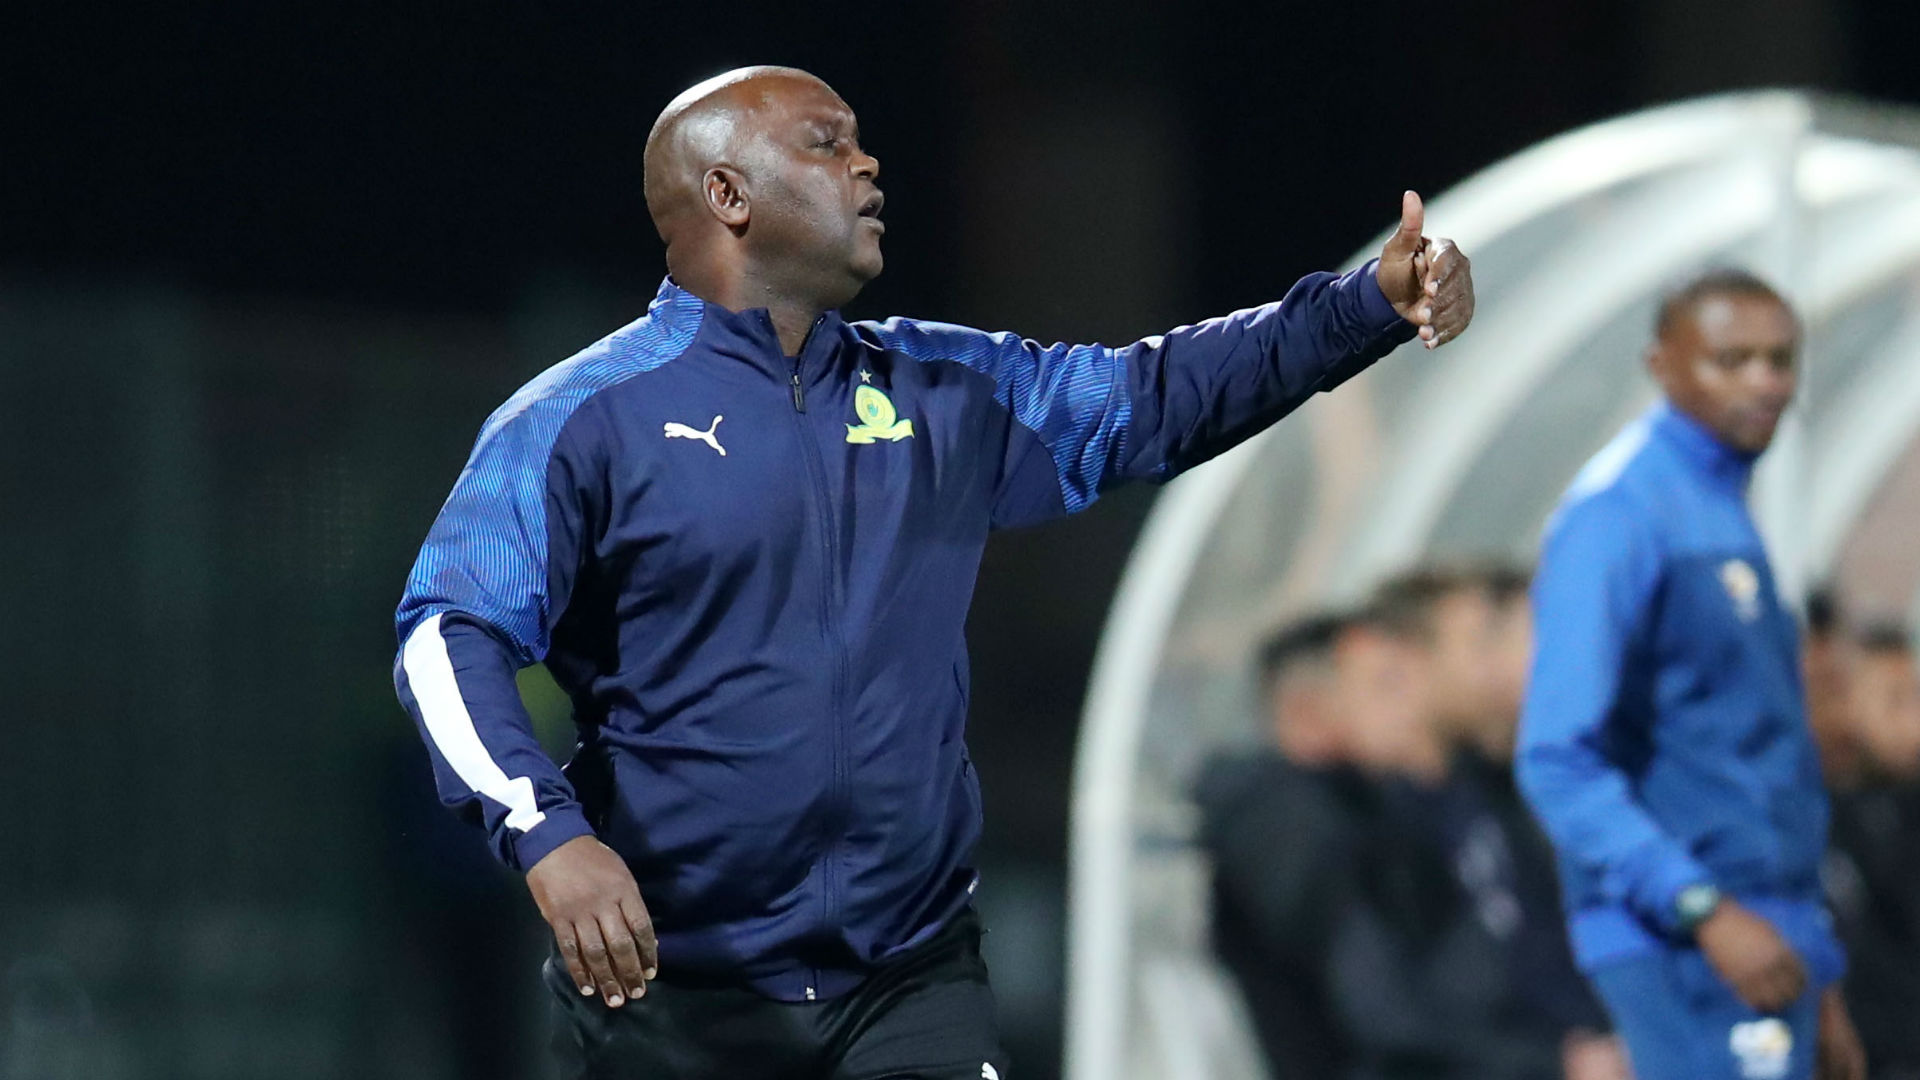 Mamelodi Sundowns Pitso Mosimane - August 2019